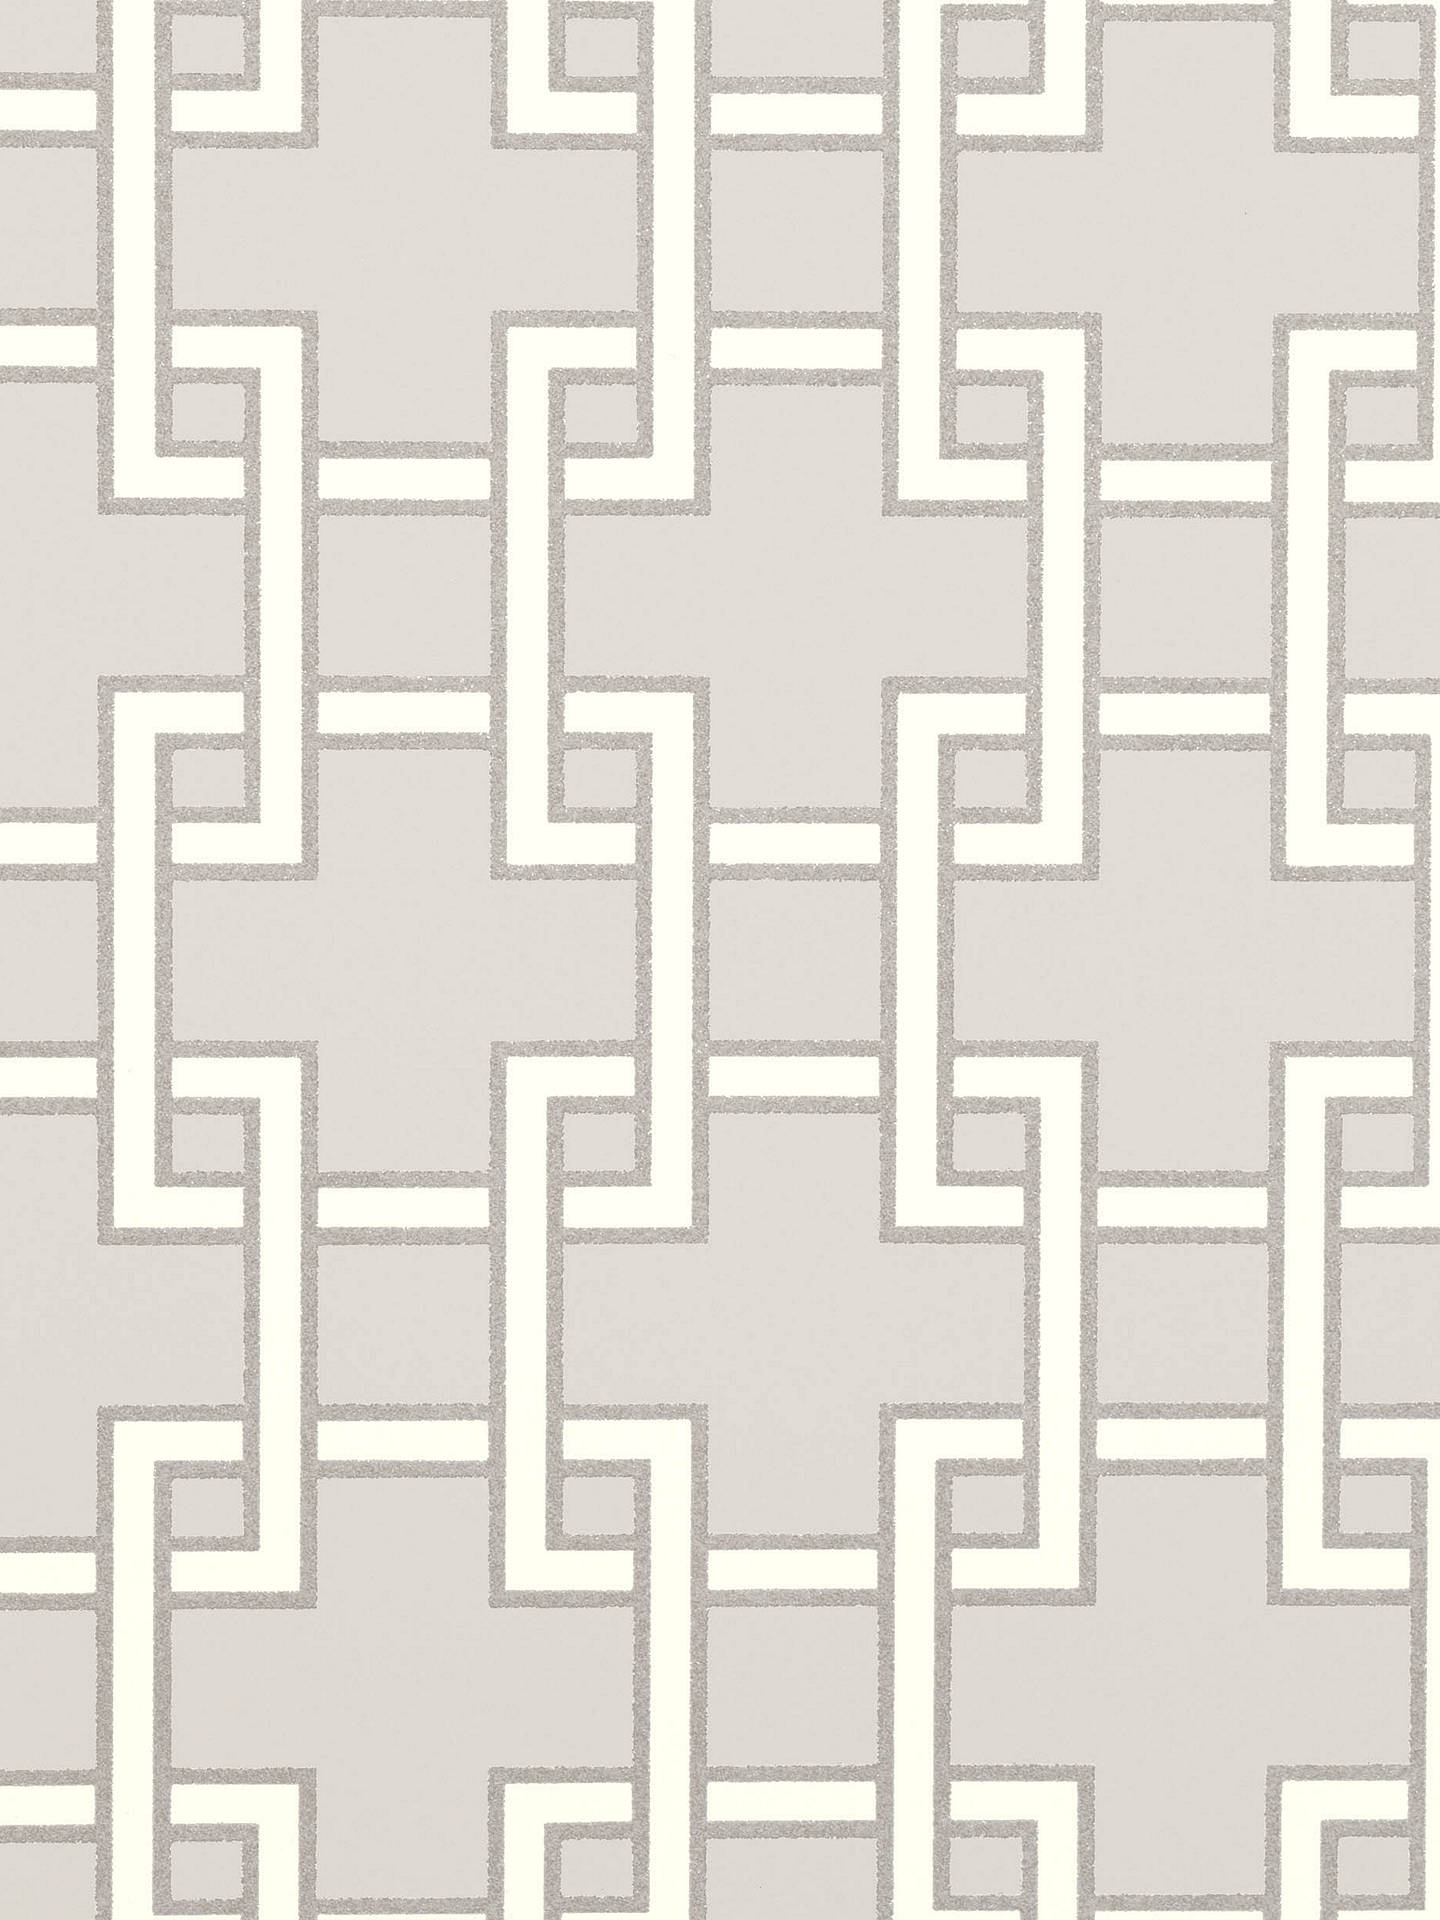 Buy Romo Orden Paste the Wall Wallpaper, Silver W401/03 Online at johnlewis.com